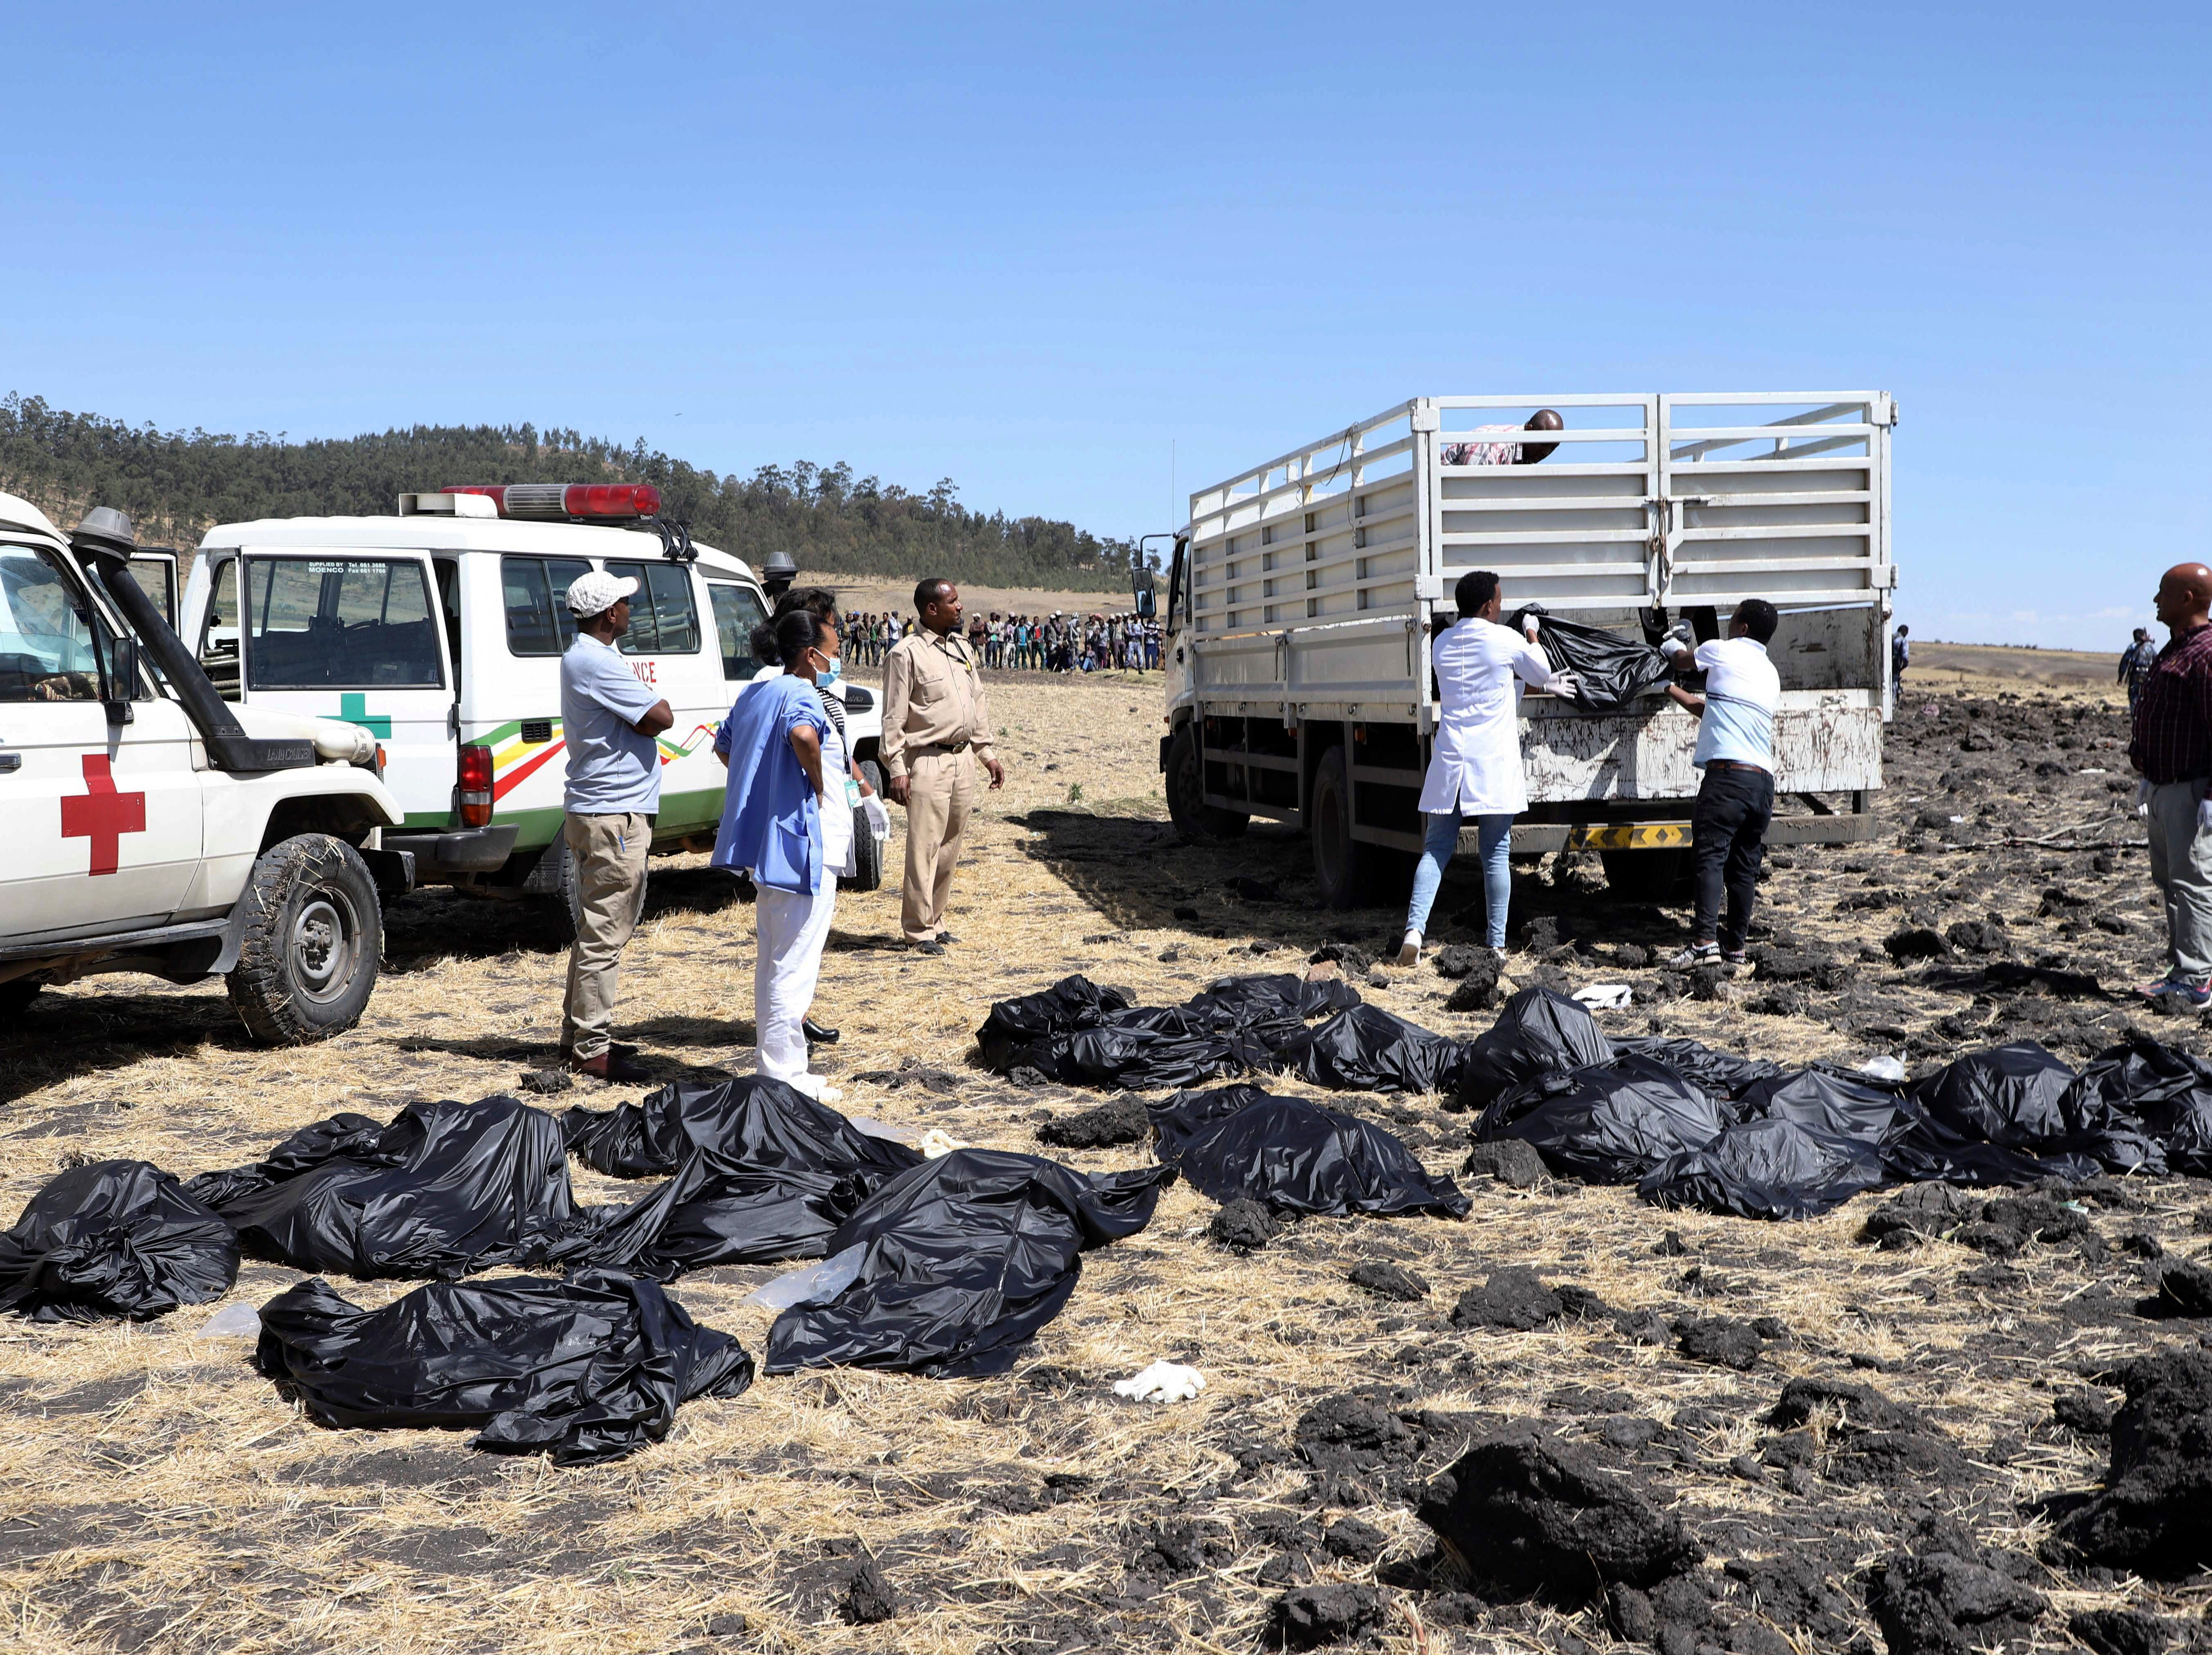 Rescuers remove body bags from the scene of an Ethiopian Airlines flight that crashed shortly after takeoff at Hejere near Bishoftu in Ethiopia.